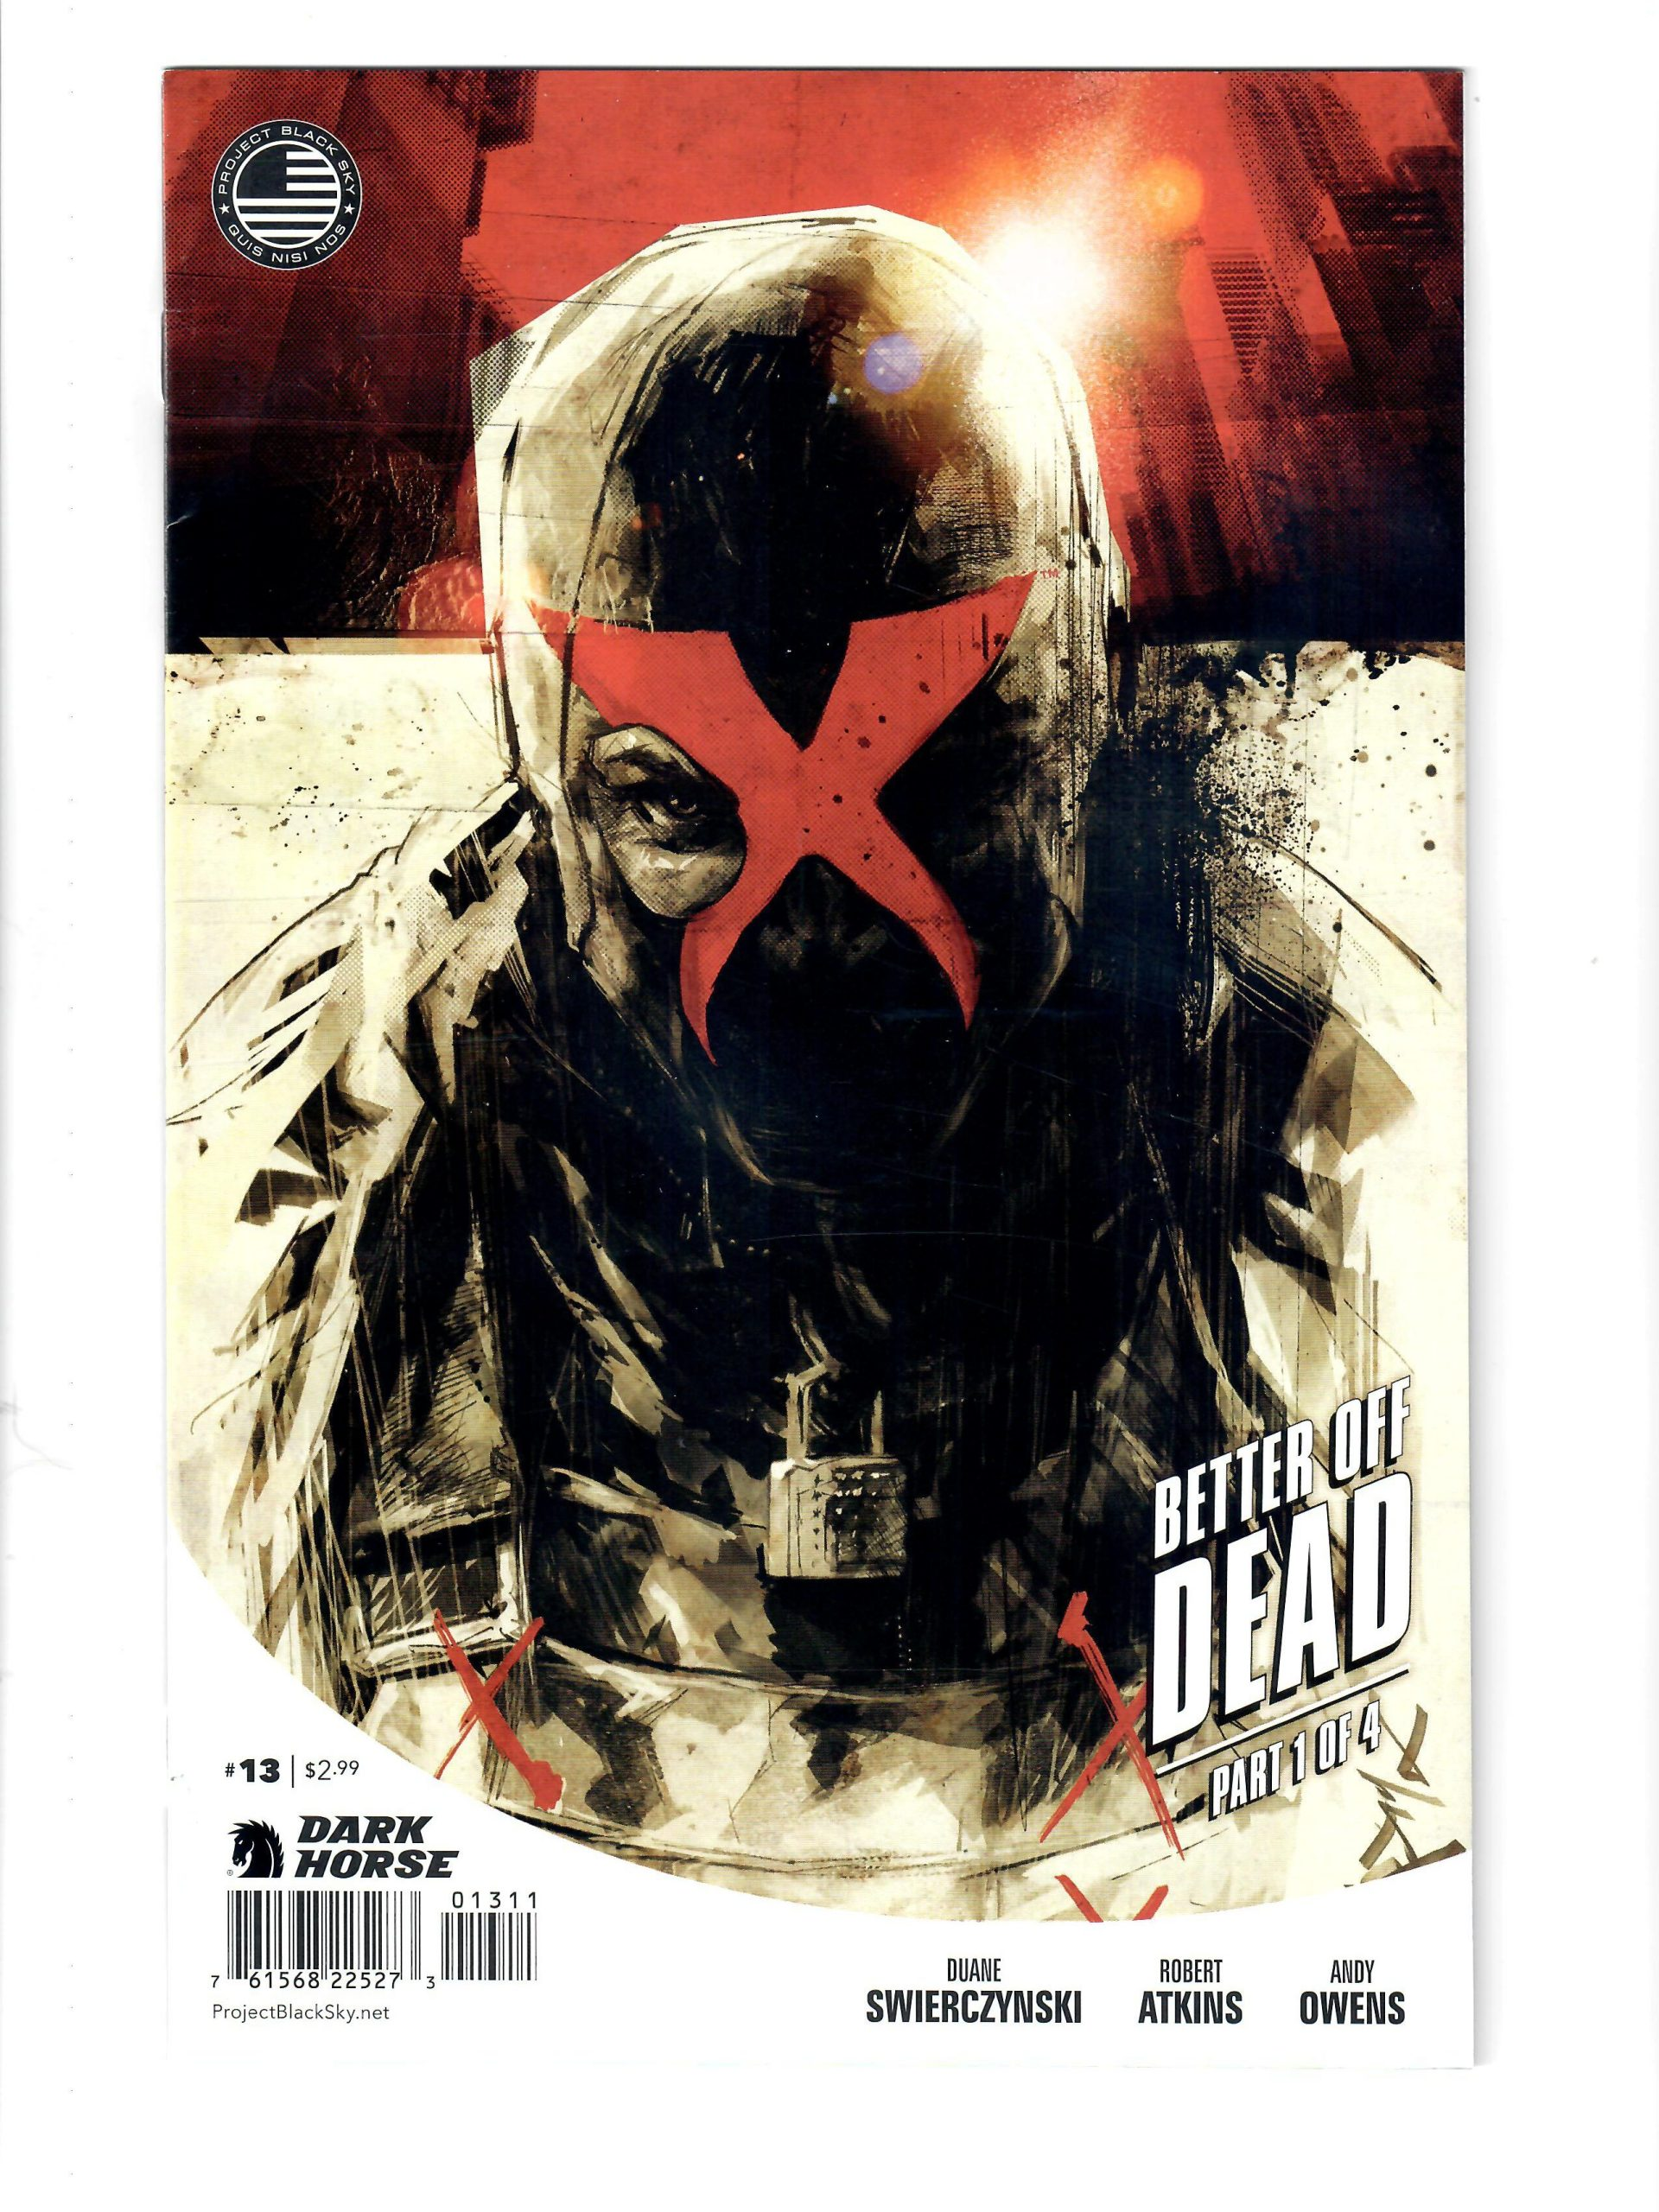 DARK HORSE COMICS X BETTER OFF DEAD #1 MAY 2014 COMIC #159217-7